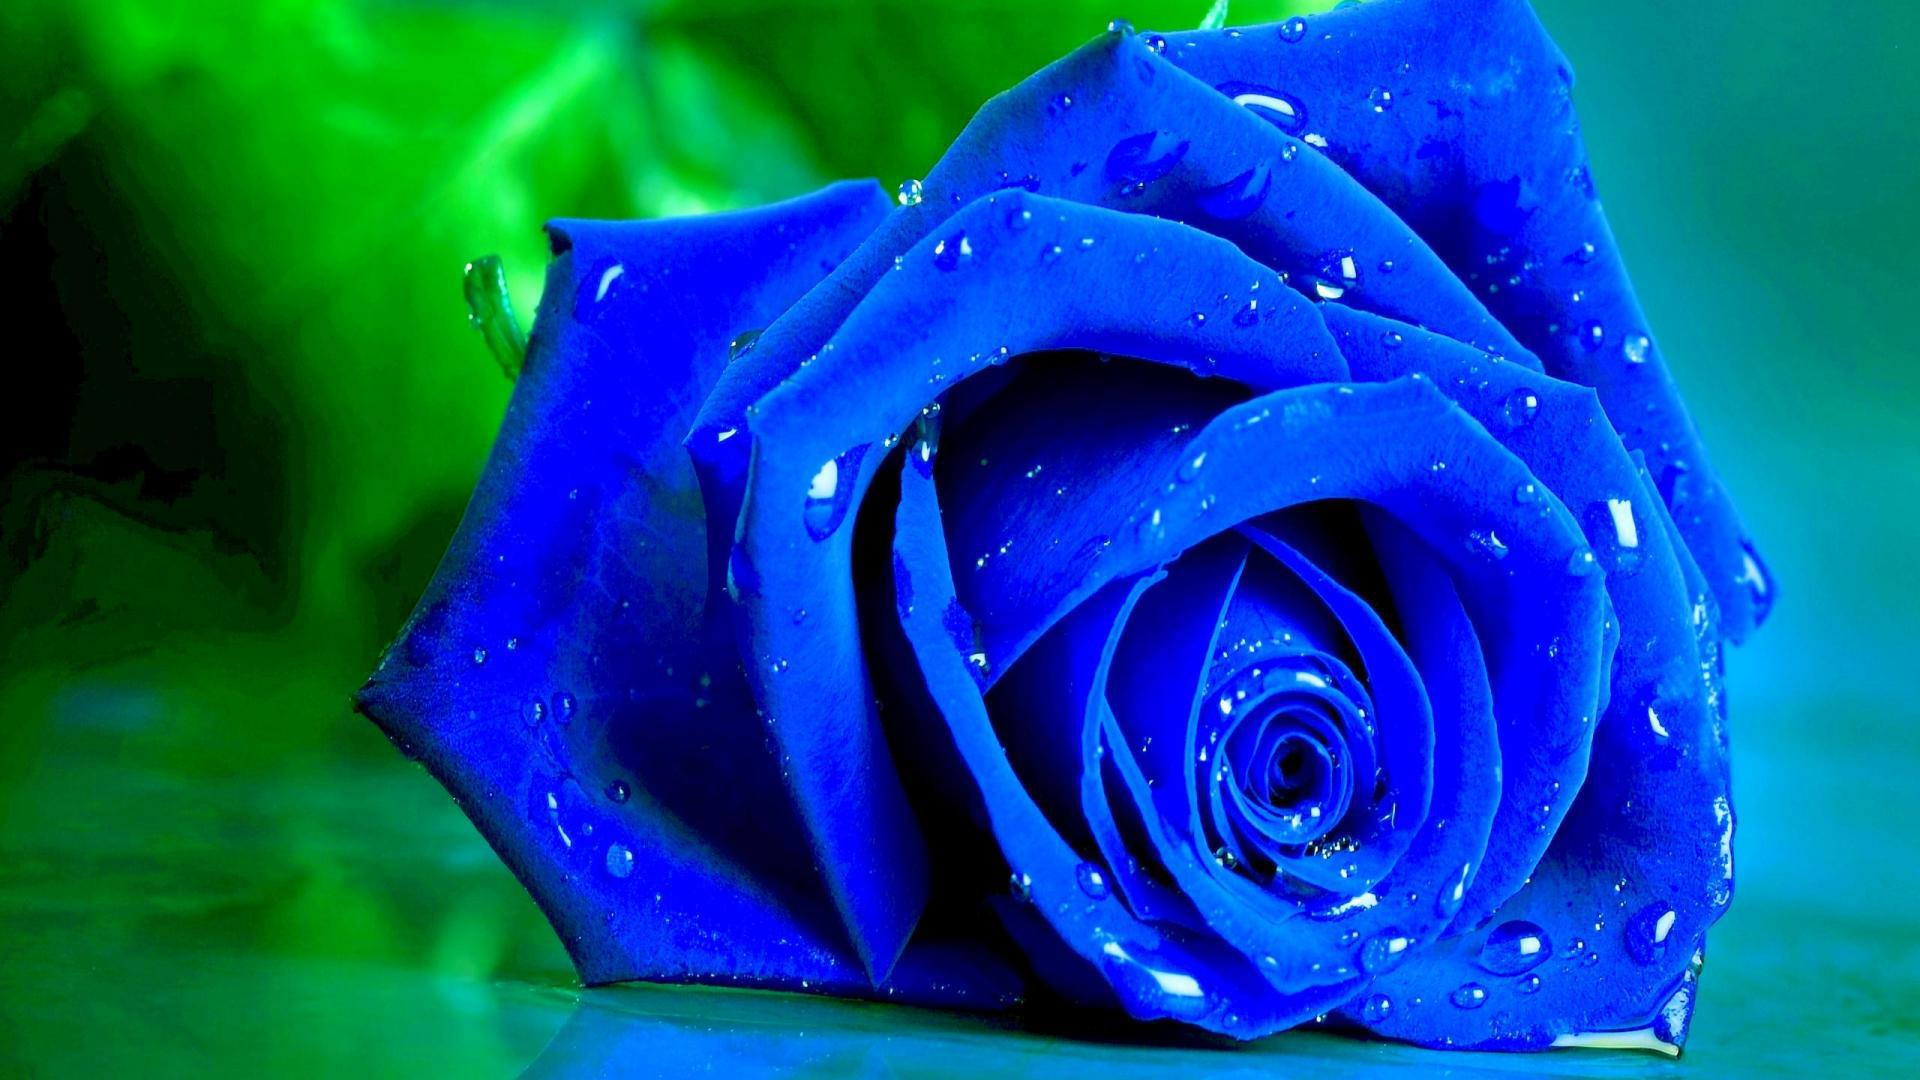 flowers-wet-blue-rose-on-a-green-wallpaper-hd-06